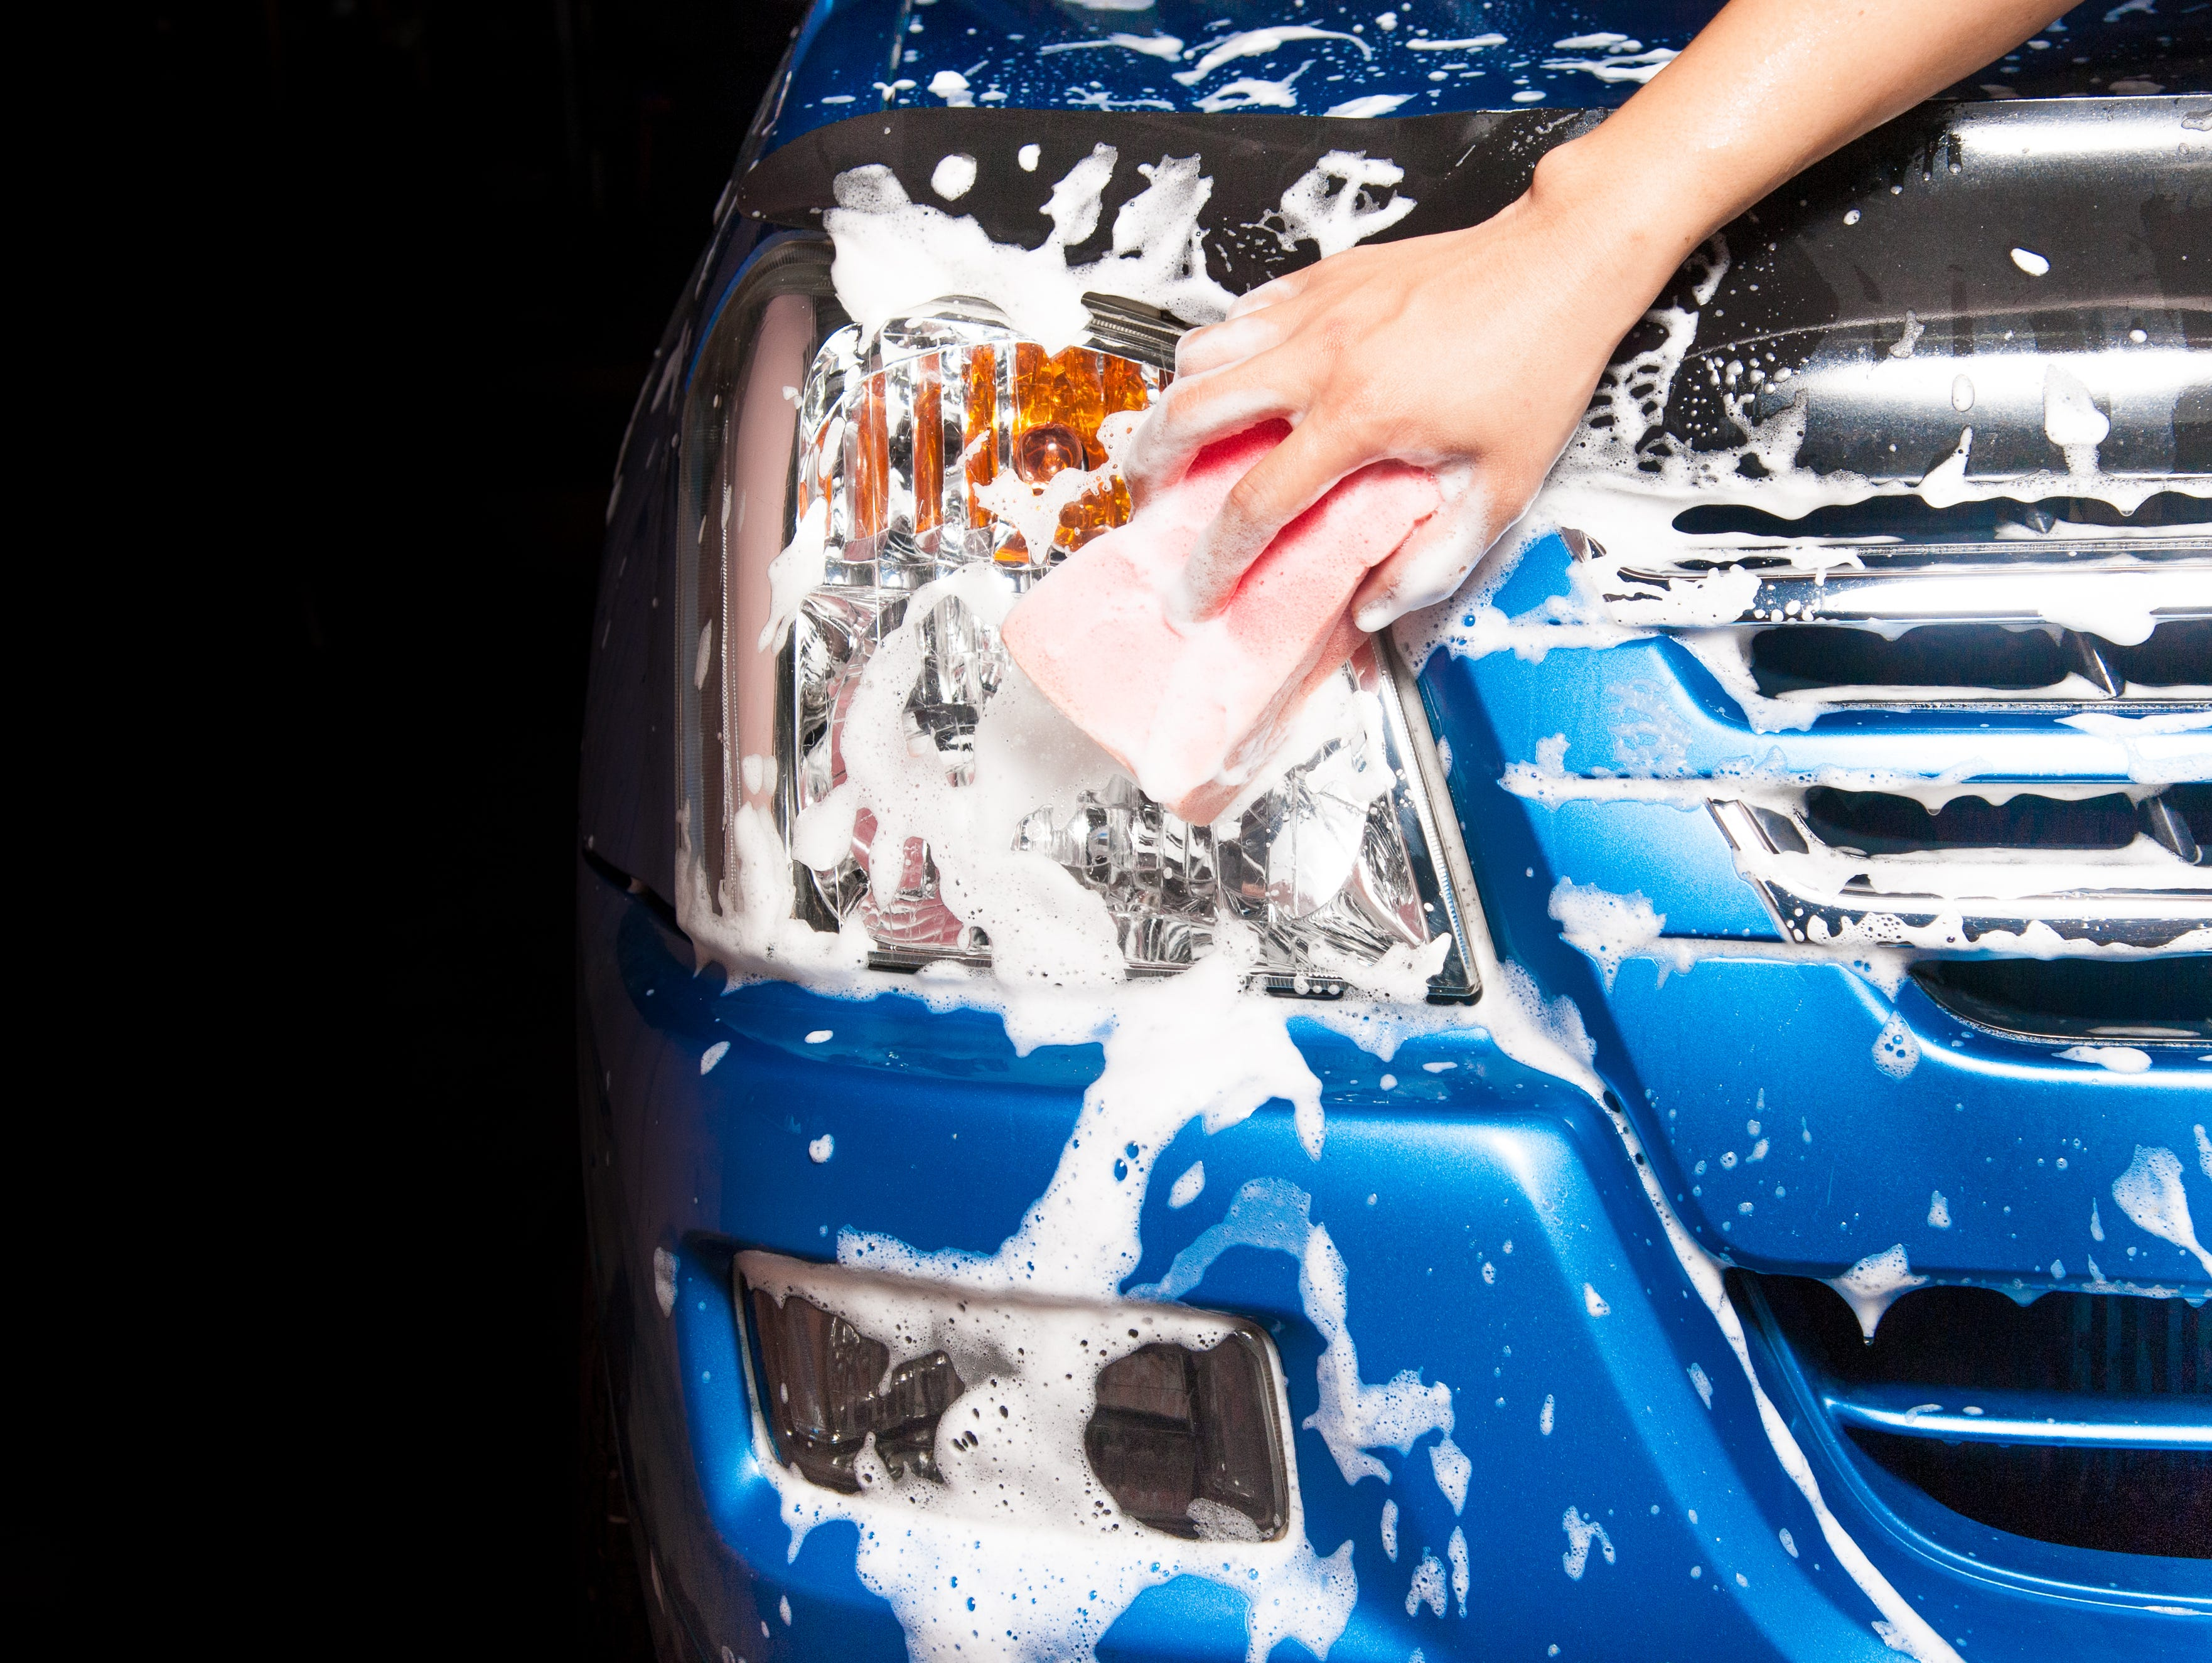 Insiders receive exclusive savings at Downtowner Car Wash.